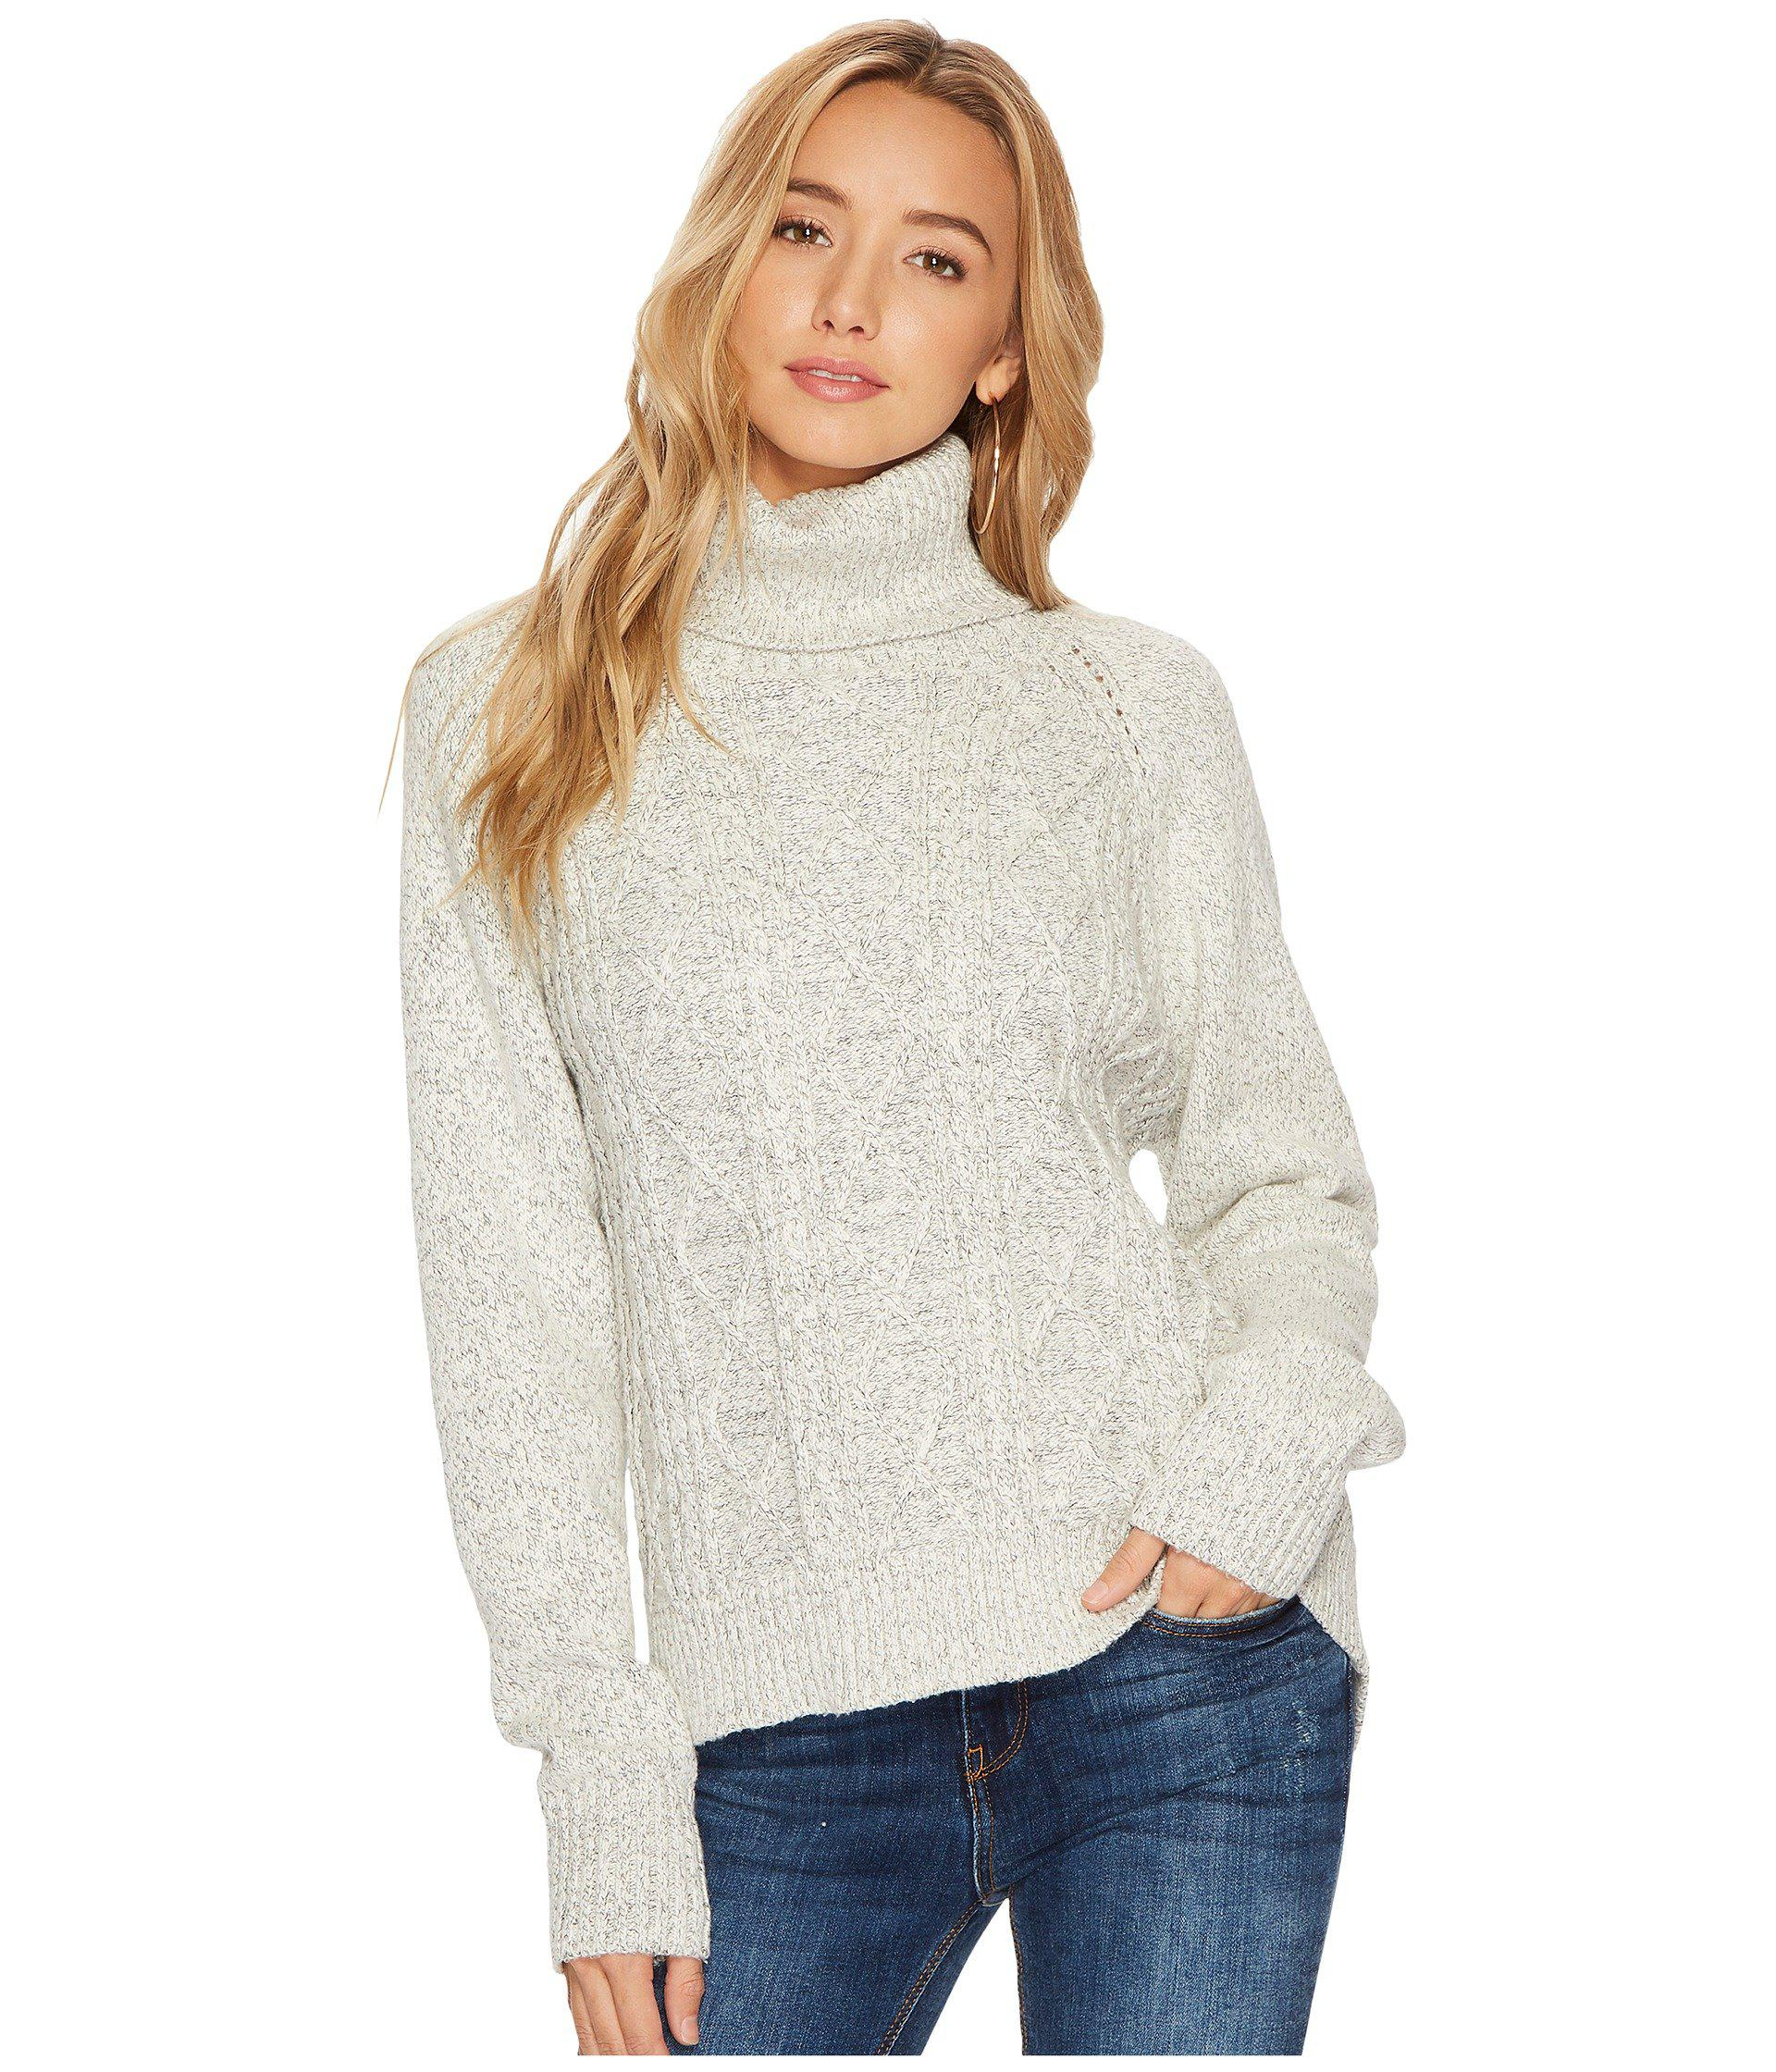 23a39322cfa Gallery. Previously sold at  Zappos · Women s Cable Knit Sweaters